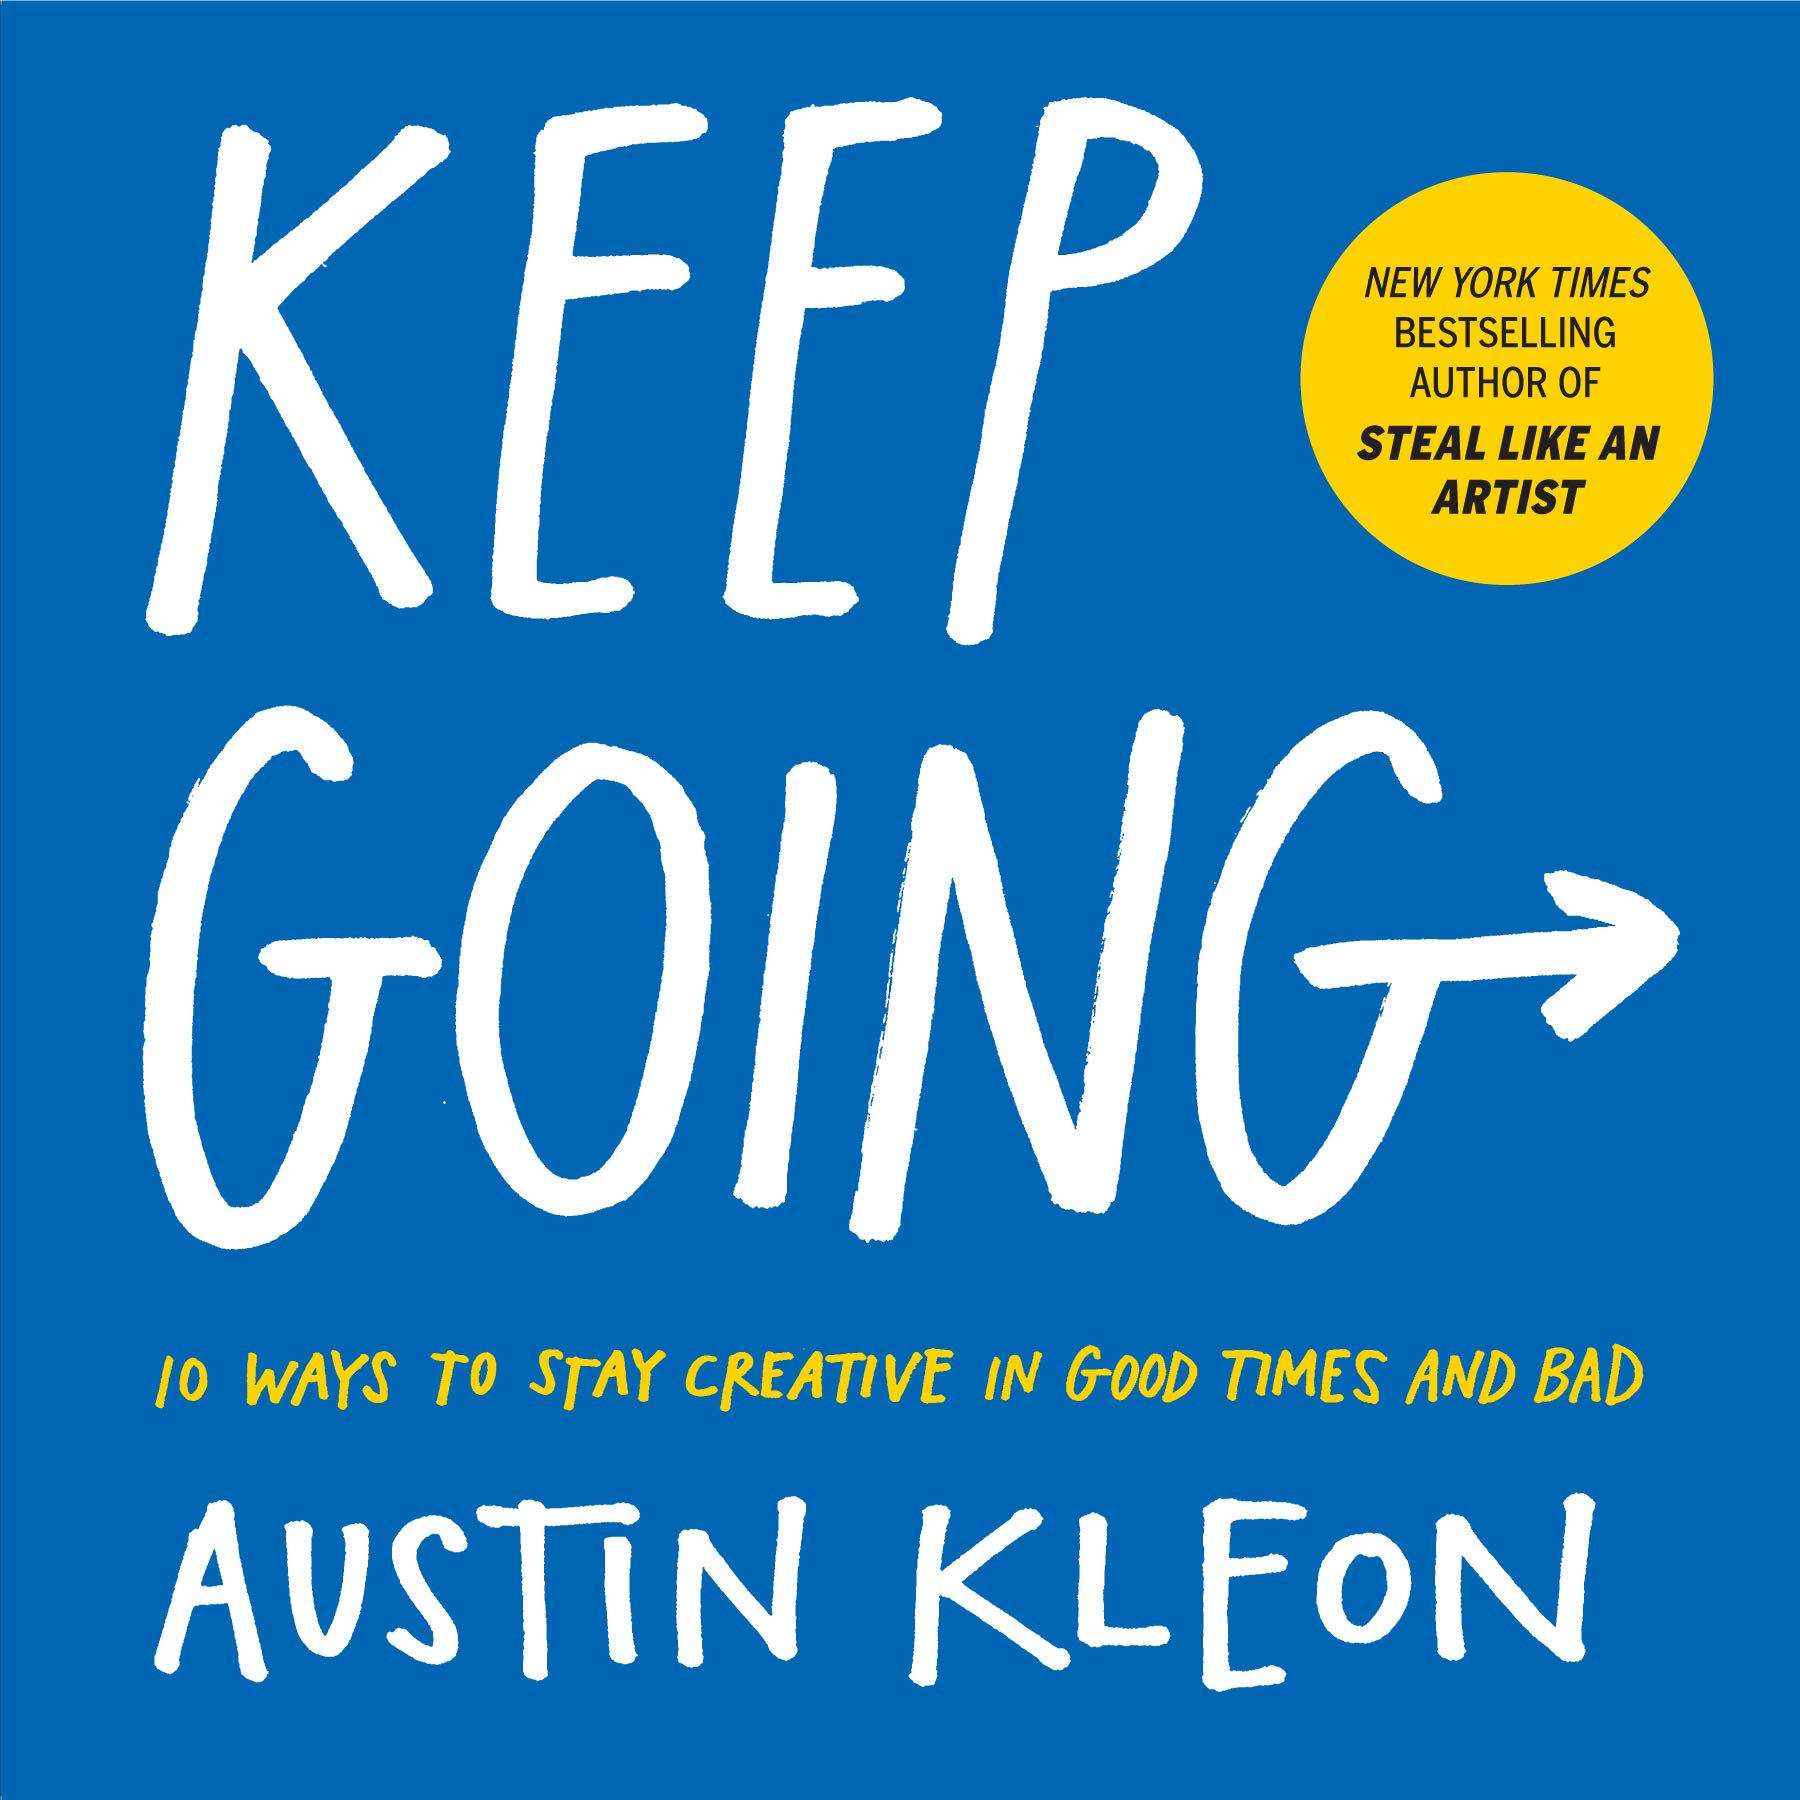 keep-going-10-ways-to-stay-creative-in-good-times-and-bad-by-austin-kleon